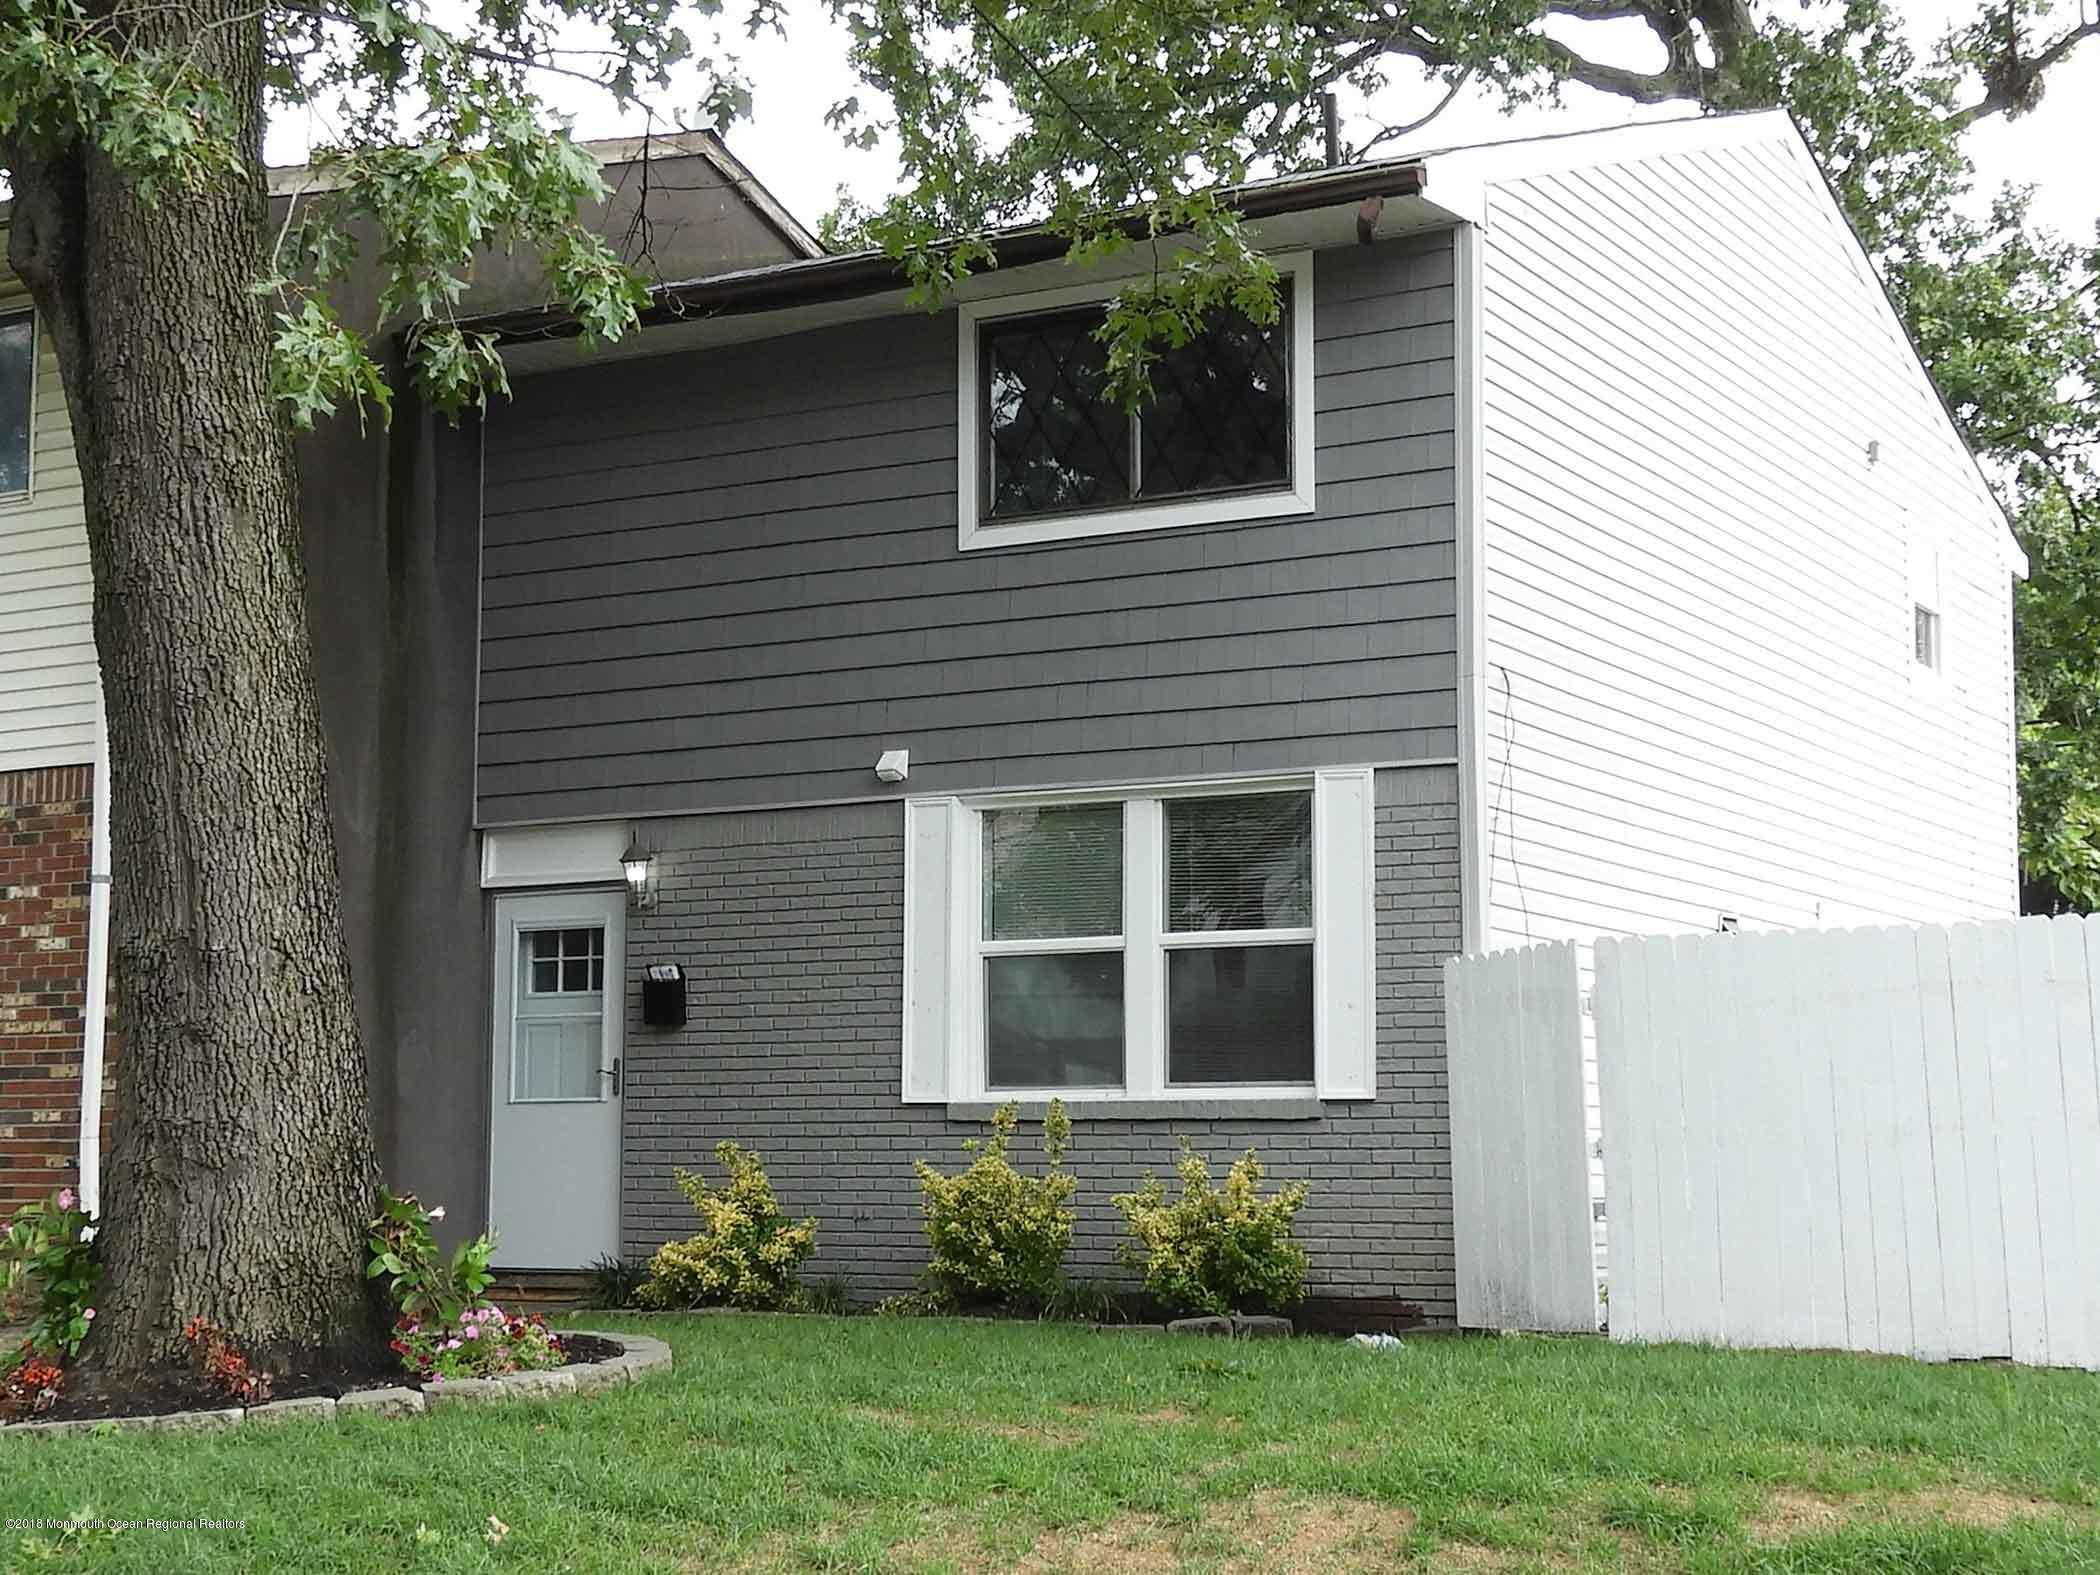 Great opportunity to rent a large 1152 sf 3 bedroom, newly renovated home with a huge yard, and off street parking.  Bathrooms, kitchen, fixtures, appliances, floor, sliding door, everything is new and ready for new buyer or tenant to move in.